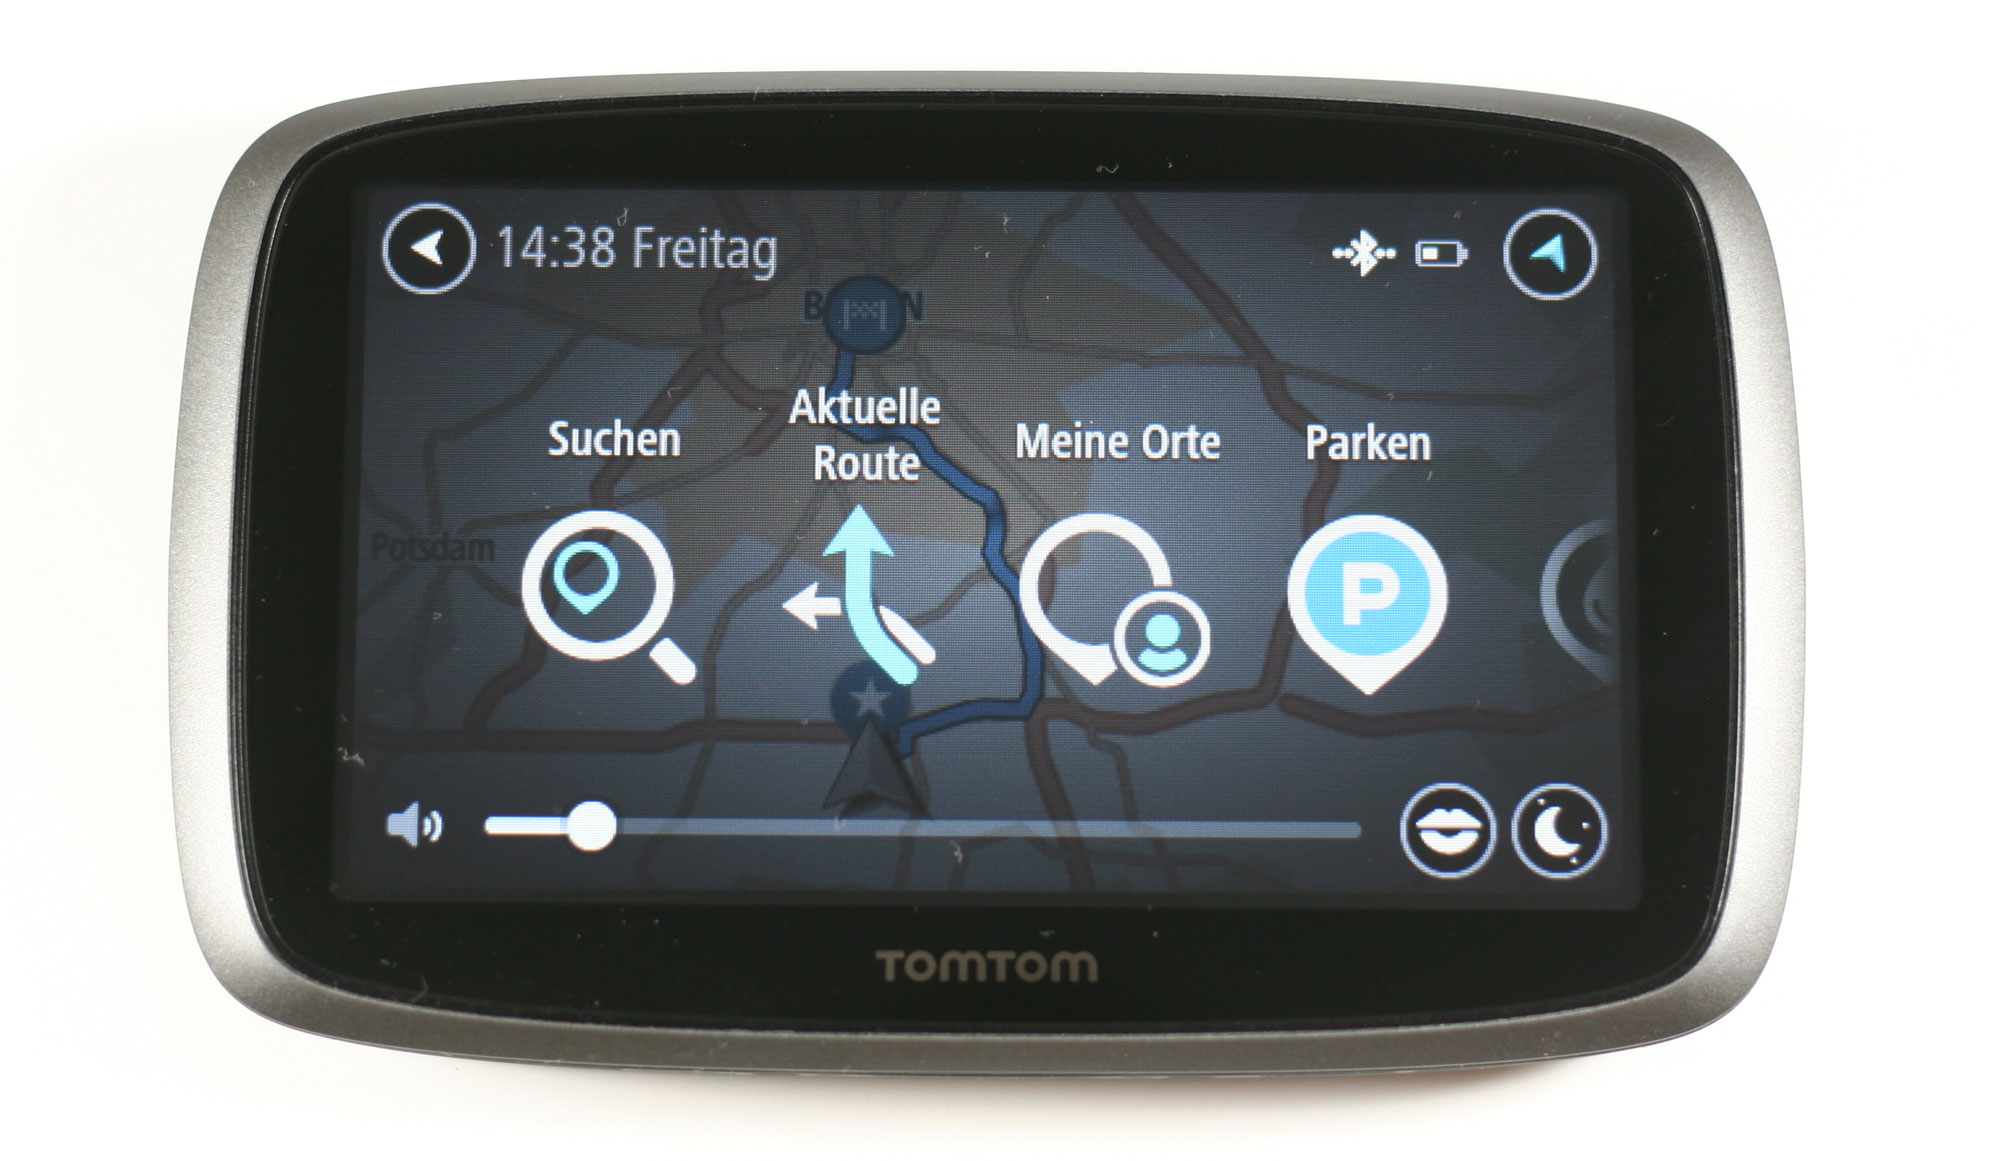 tomtom go 500 im test seite 2 navigation gps blitzer pois. Black Bedroom Furniture Sets. Home Design Ideas